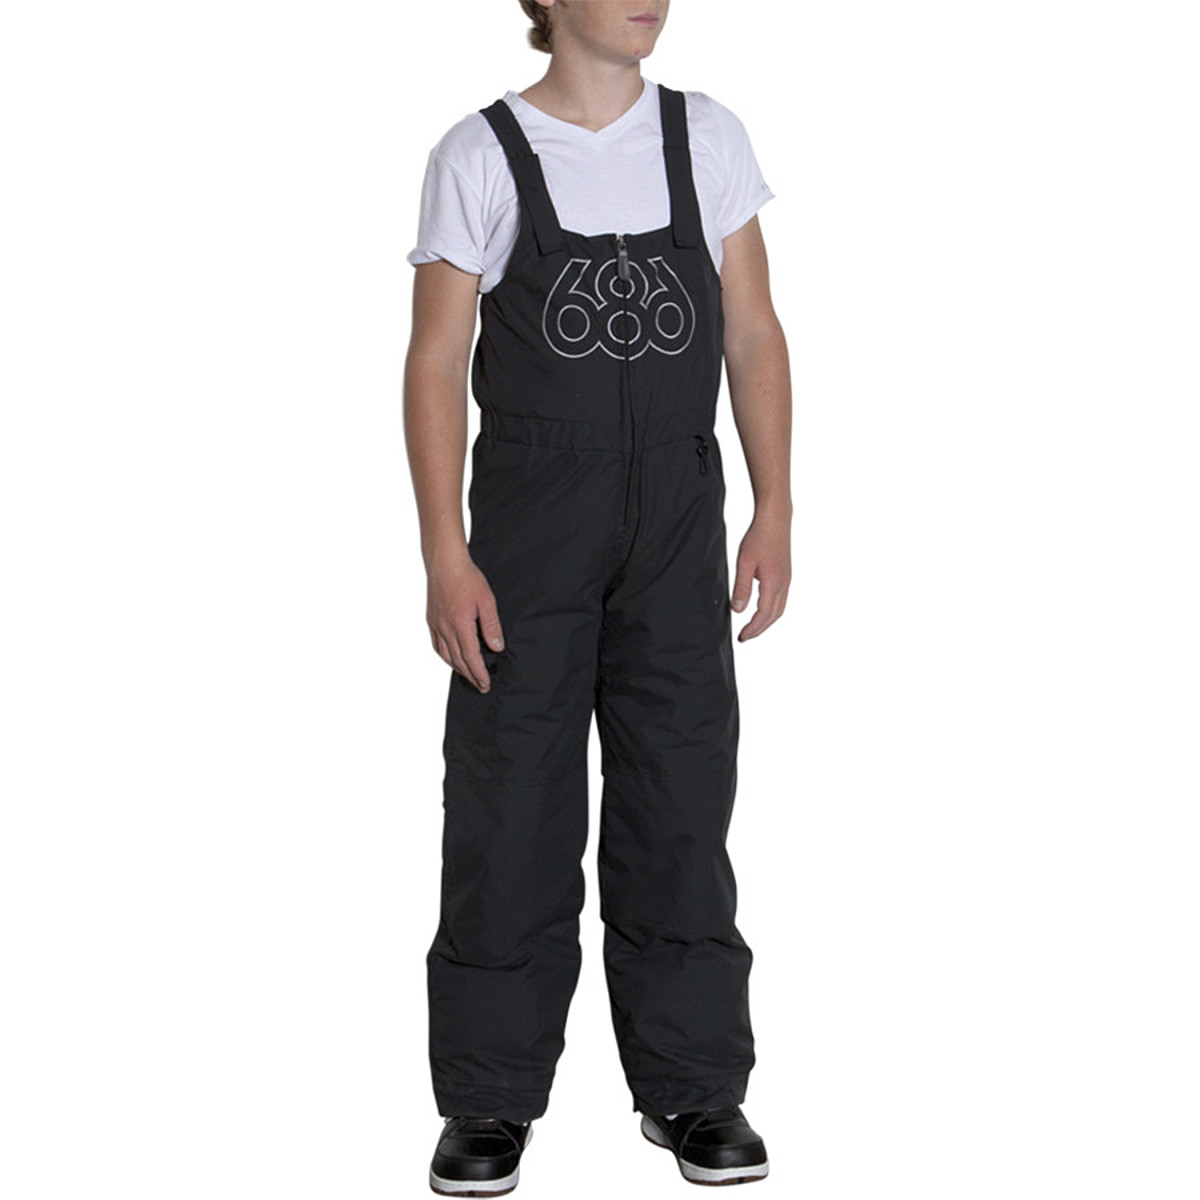 686 Authentic Recess Bib